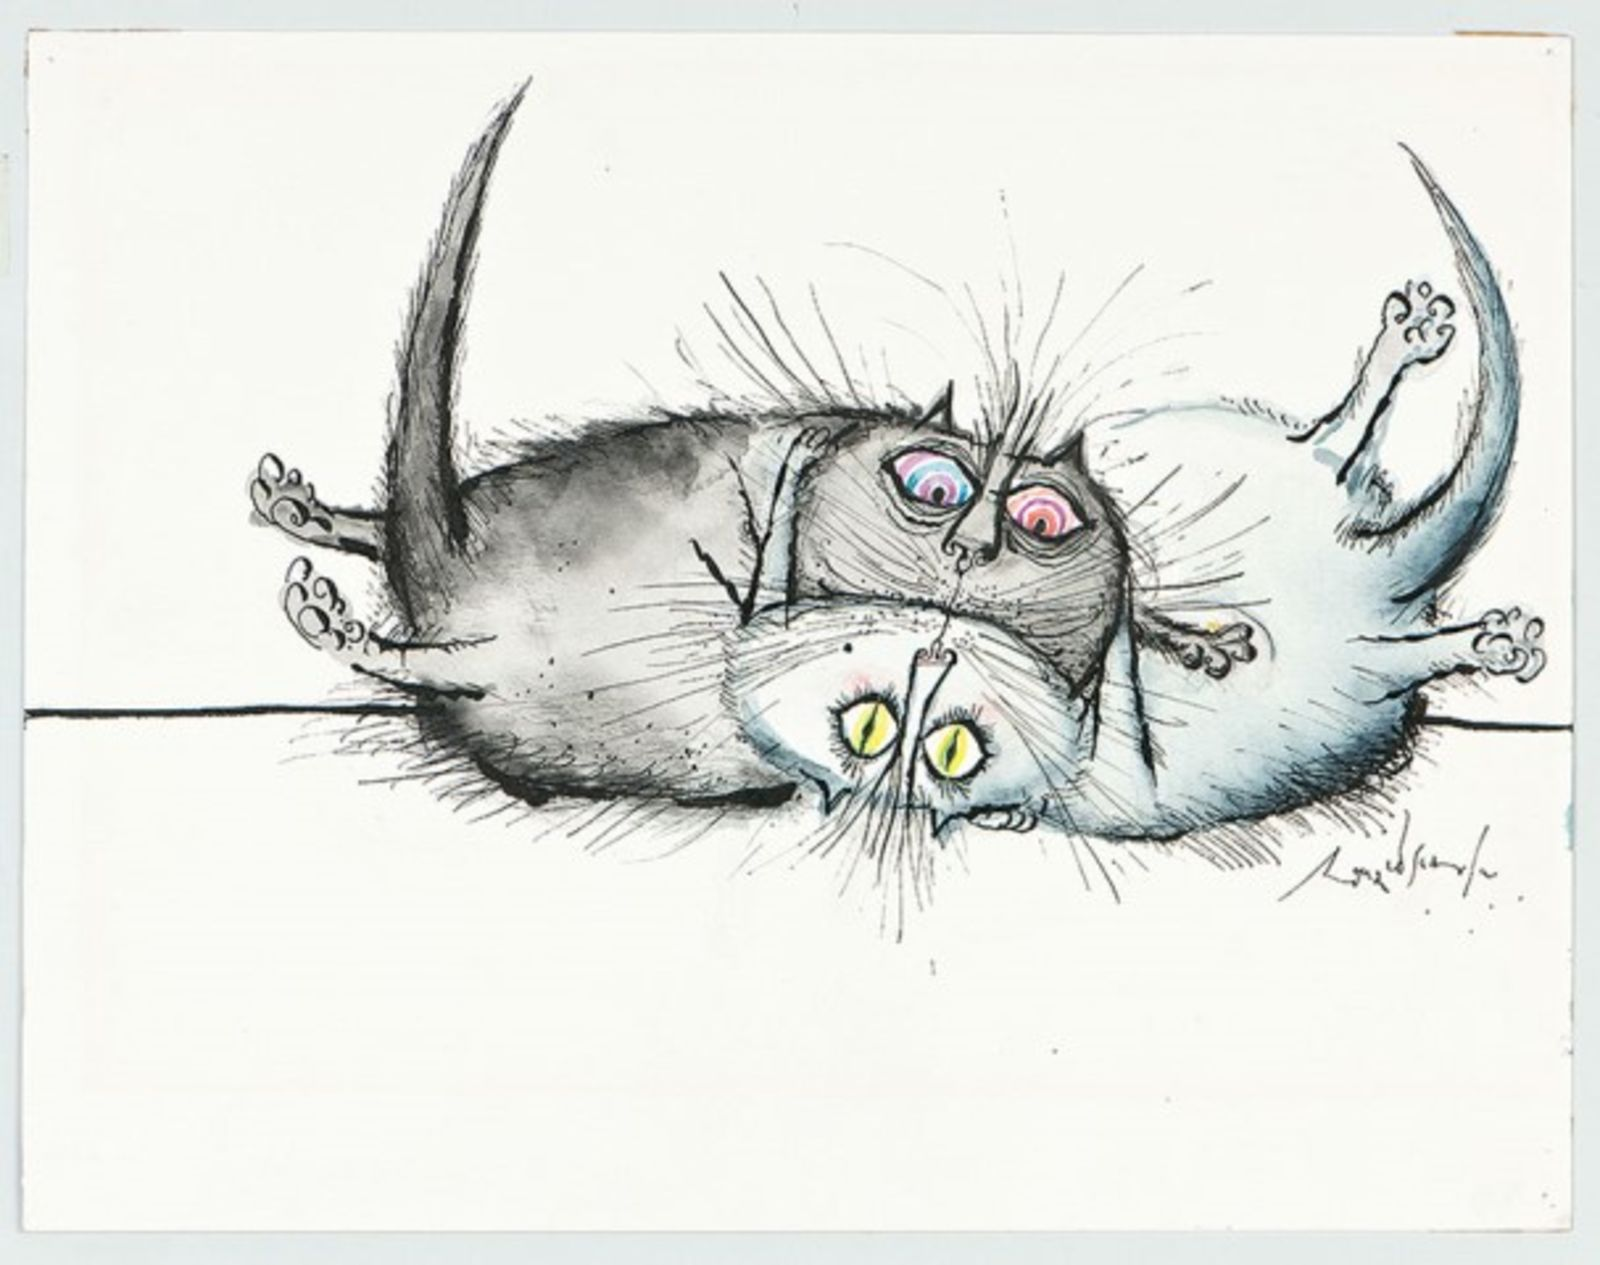 Ronald Searle: Two cats quite calmly